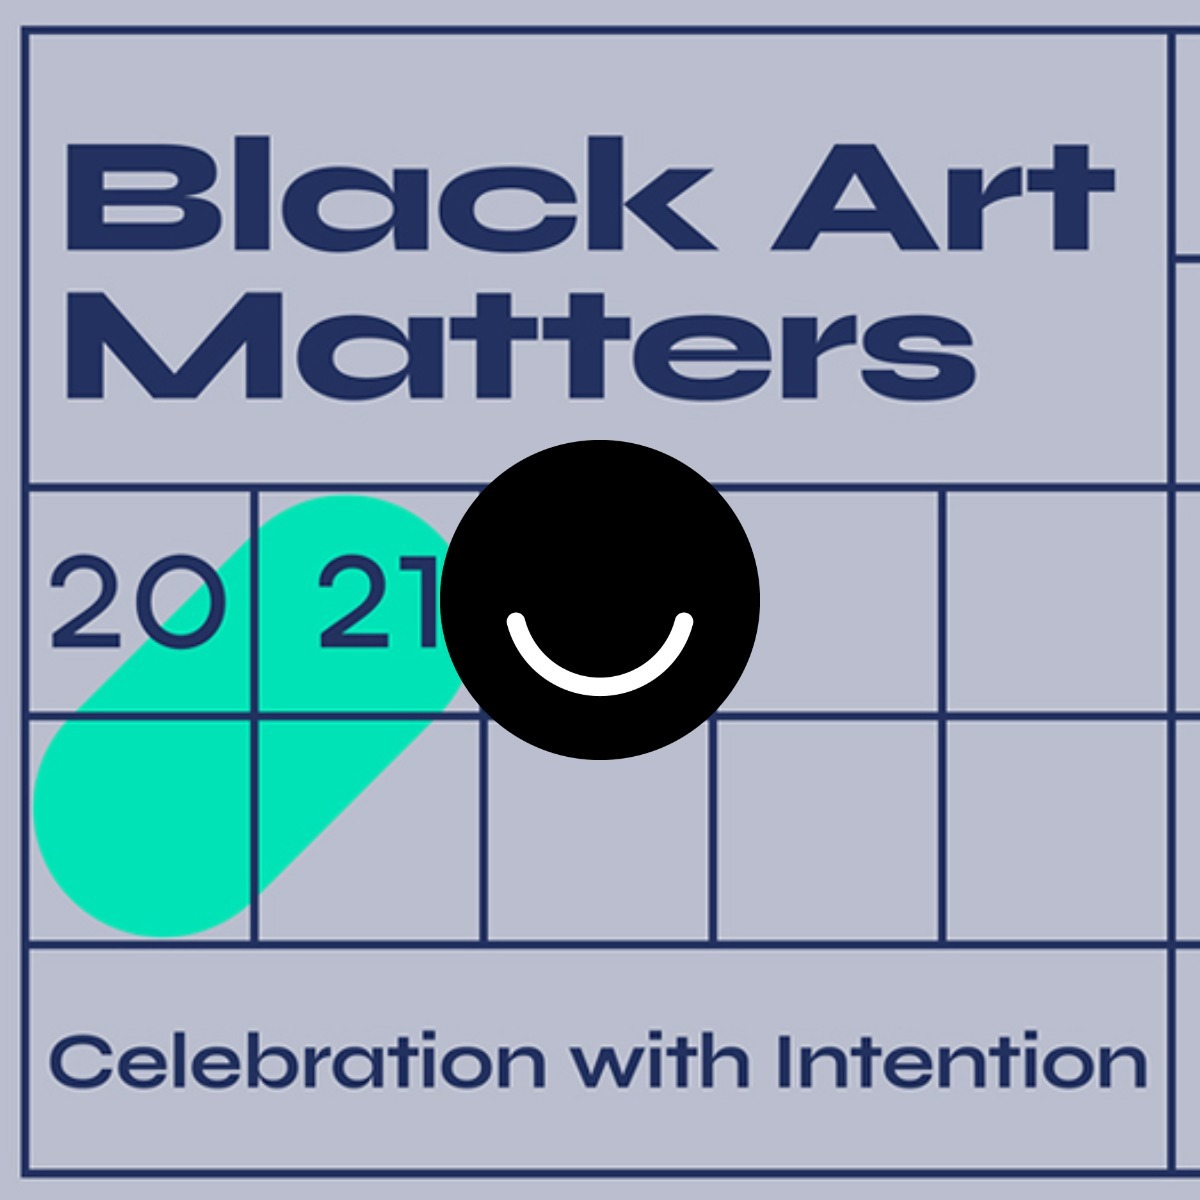 Black Art Matters: Celebration with Intention